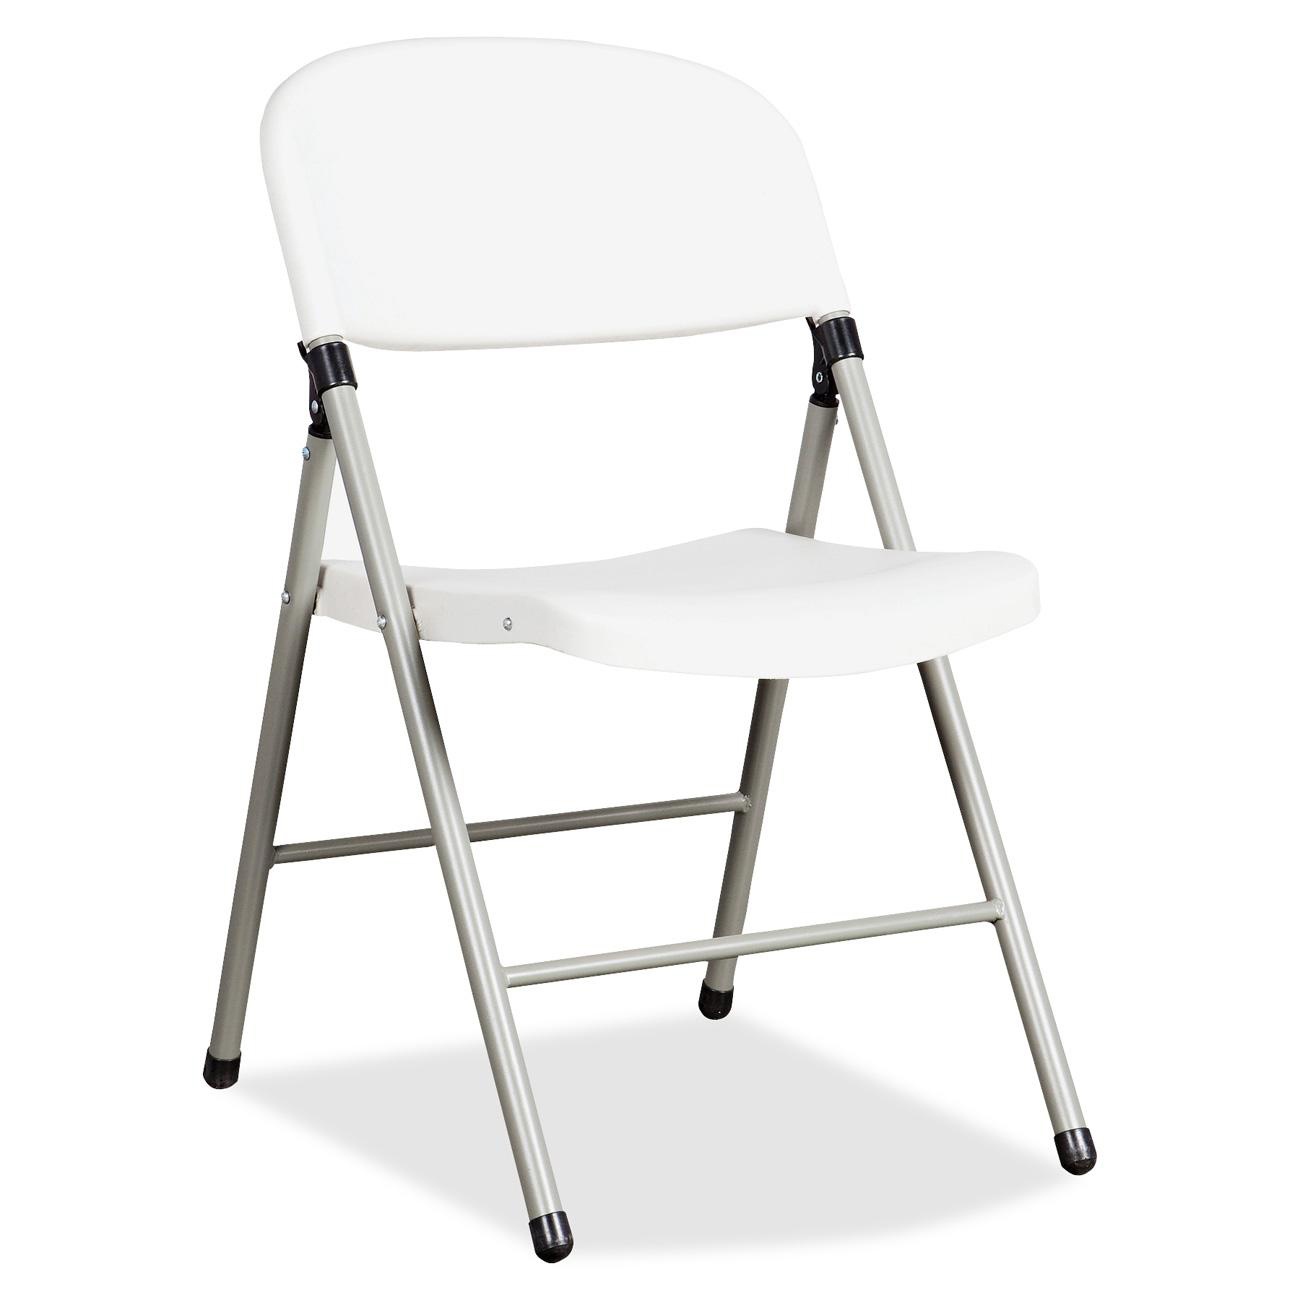 Soft Folding Chairs Office Products Office Supplies Office Furniture 1 888 840 7300